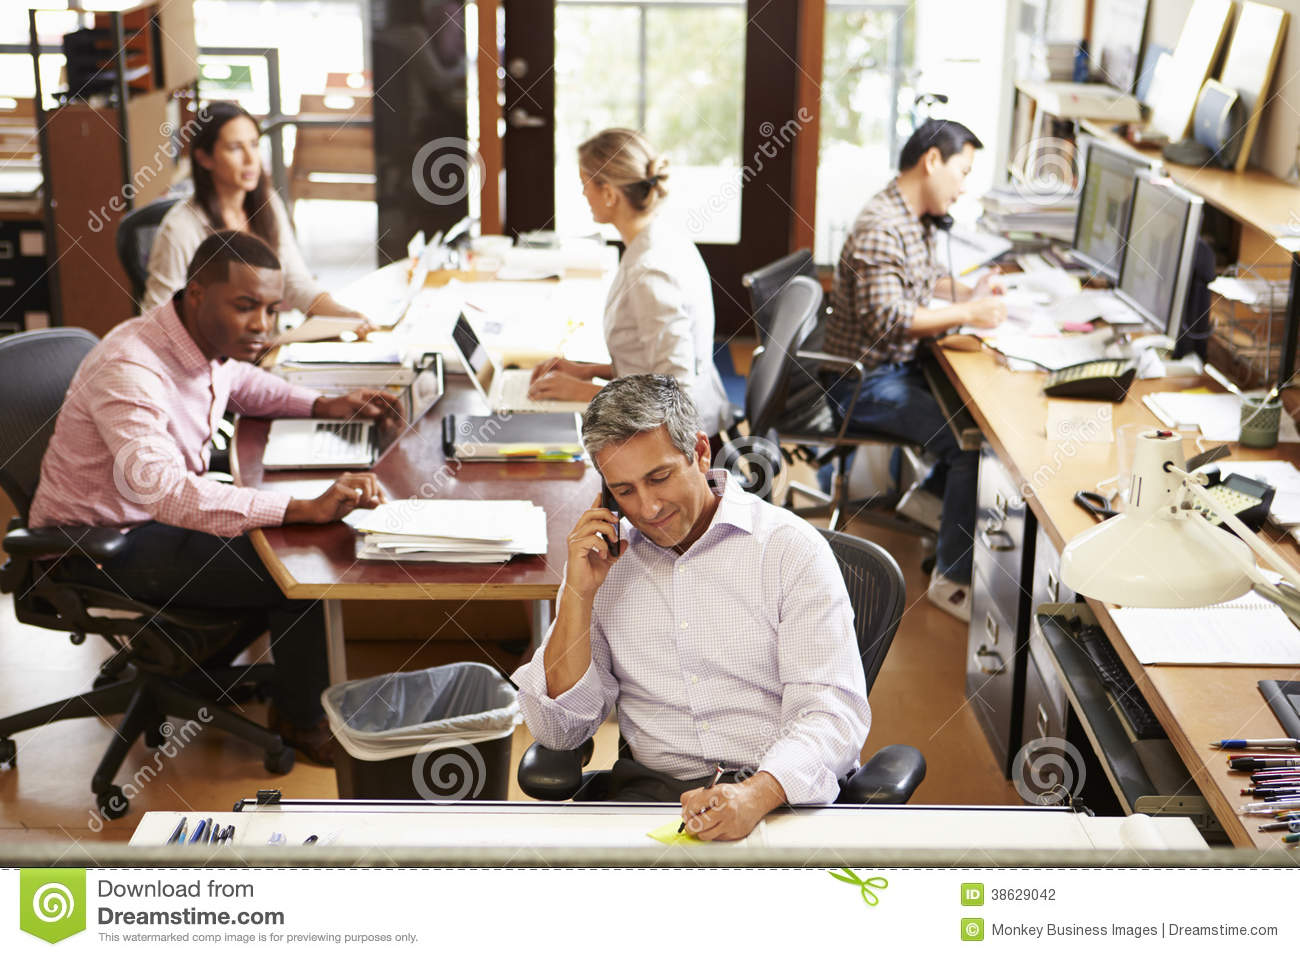 Office With Staff Working At Desks Using Computers And Phones